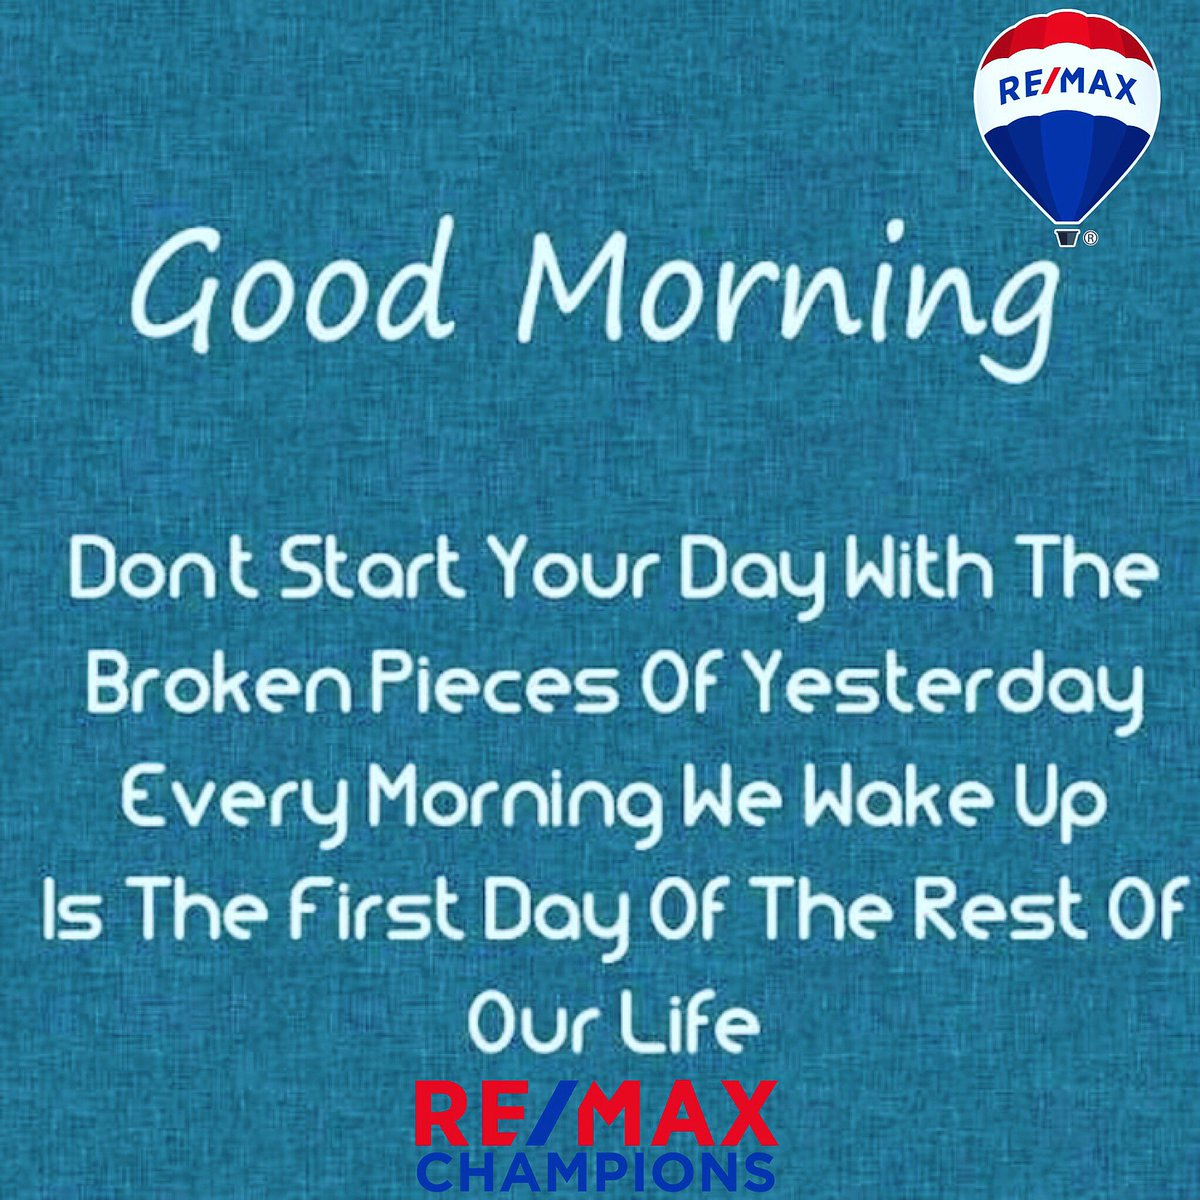 """James Muhammad-RE/MAX Vision on Twitter: """"Yesterday is behind us.. Focus on today and the future 😎 #goodmorning #tgif #friday #past #present #future # change #makeadifference #growth #remaxchampions #remax #remaxhustle #focus #mindset #haveagreatday ..."""